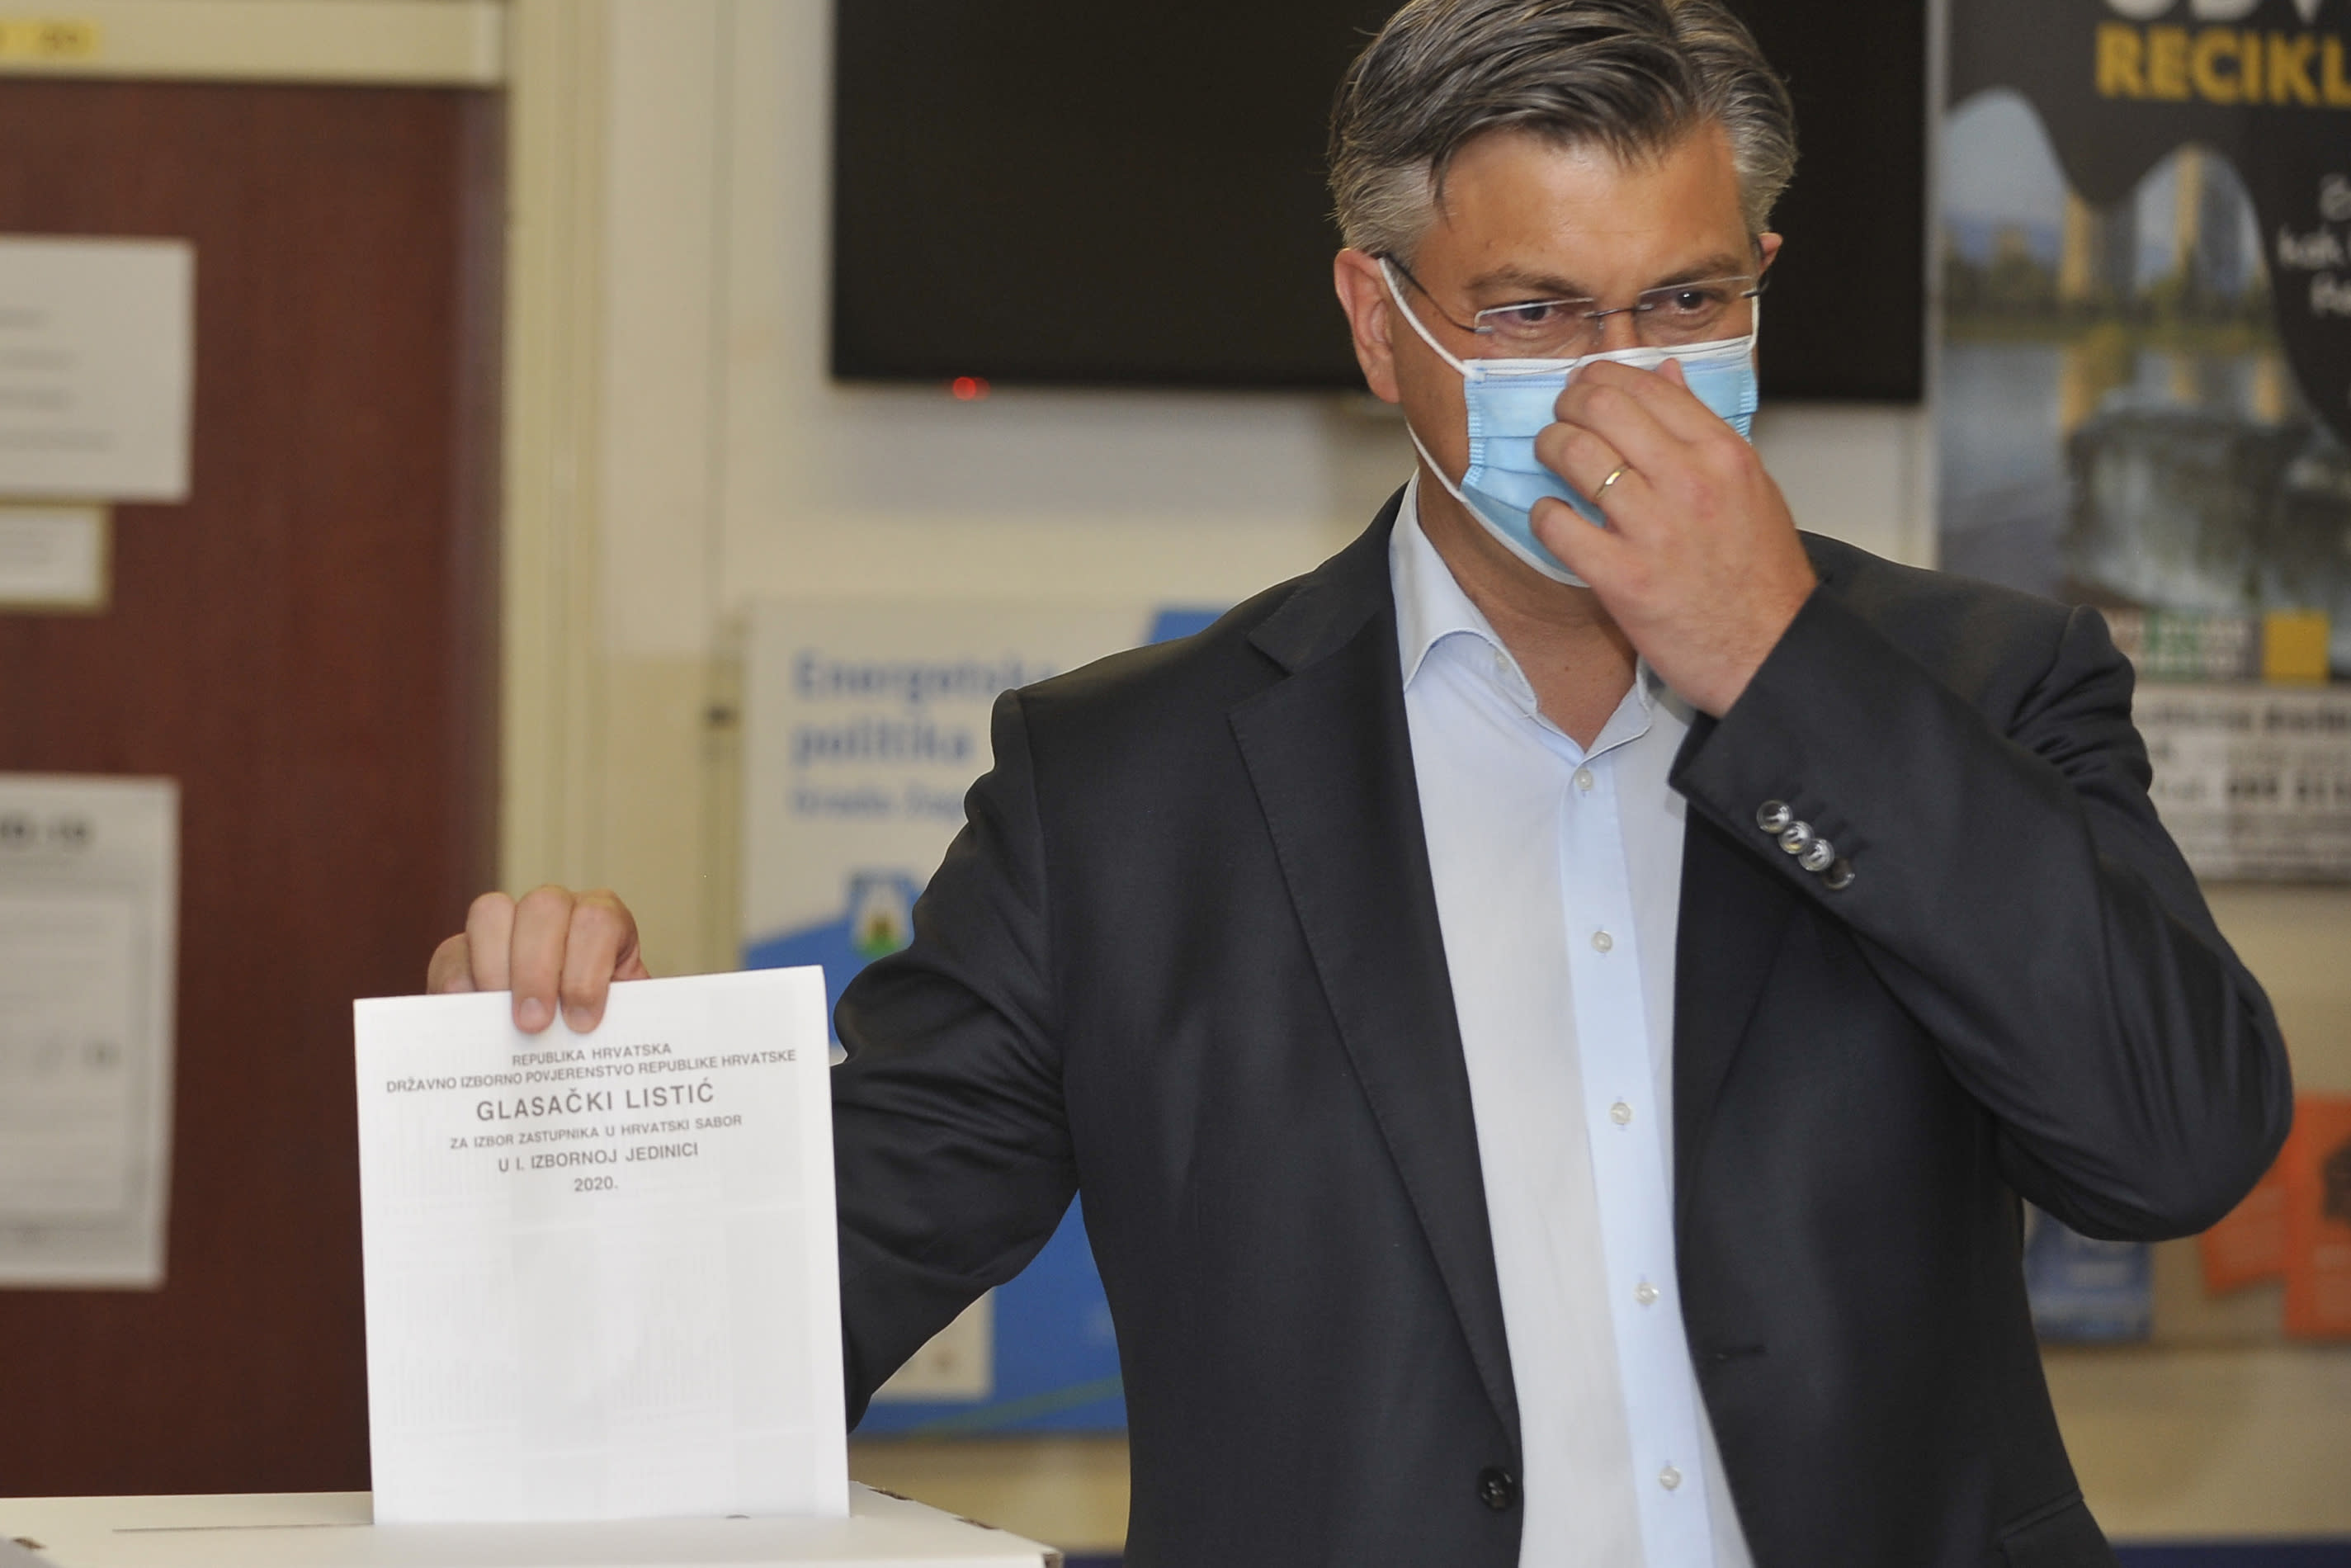 Andrej Plenkovic, Croatia's Prime Minister incumbent casts his ballot at a polling station in Zagreb, Croatia, Sunday, July 5, 2020. Amid a spike of new coronavirus cases, voters in Croatia cast ballots on Sunday in what is expected be a close parliamentary race that could push the latest European Union member state further to the right. (AP Photo)